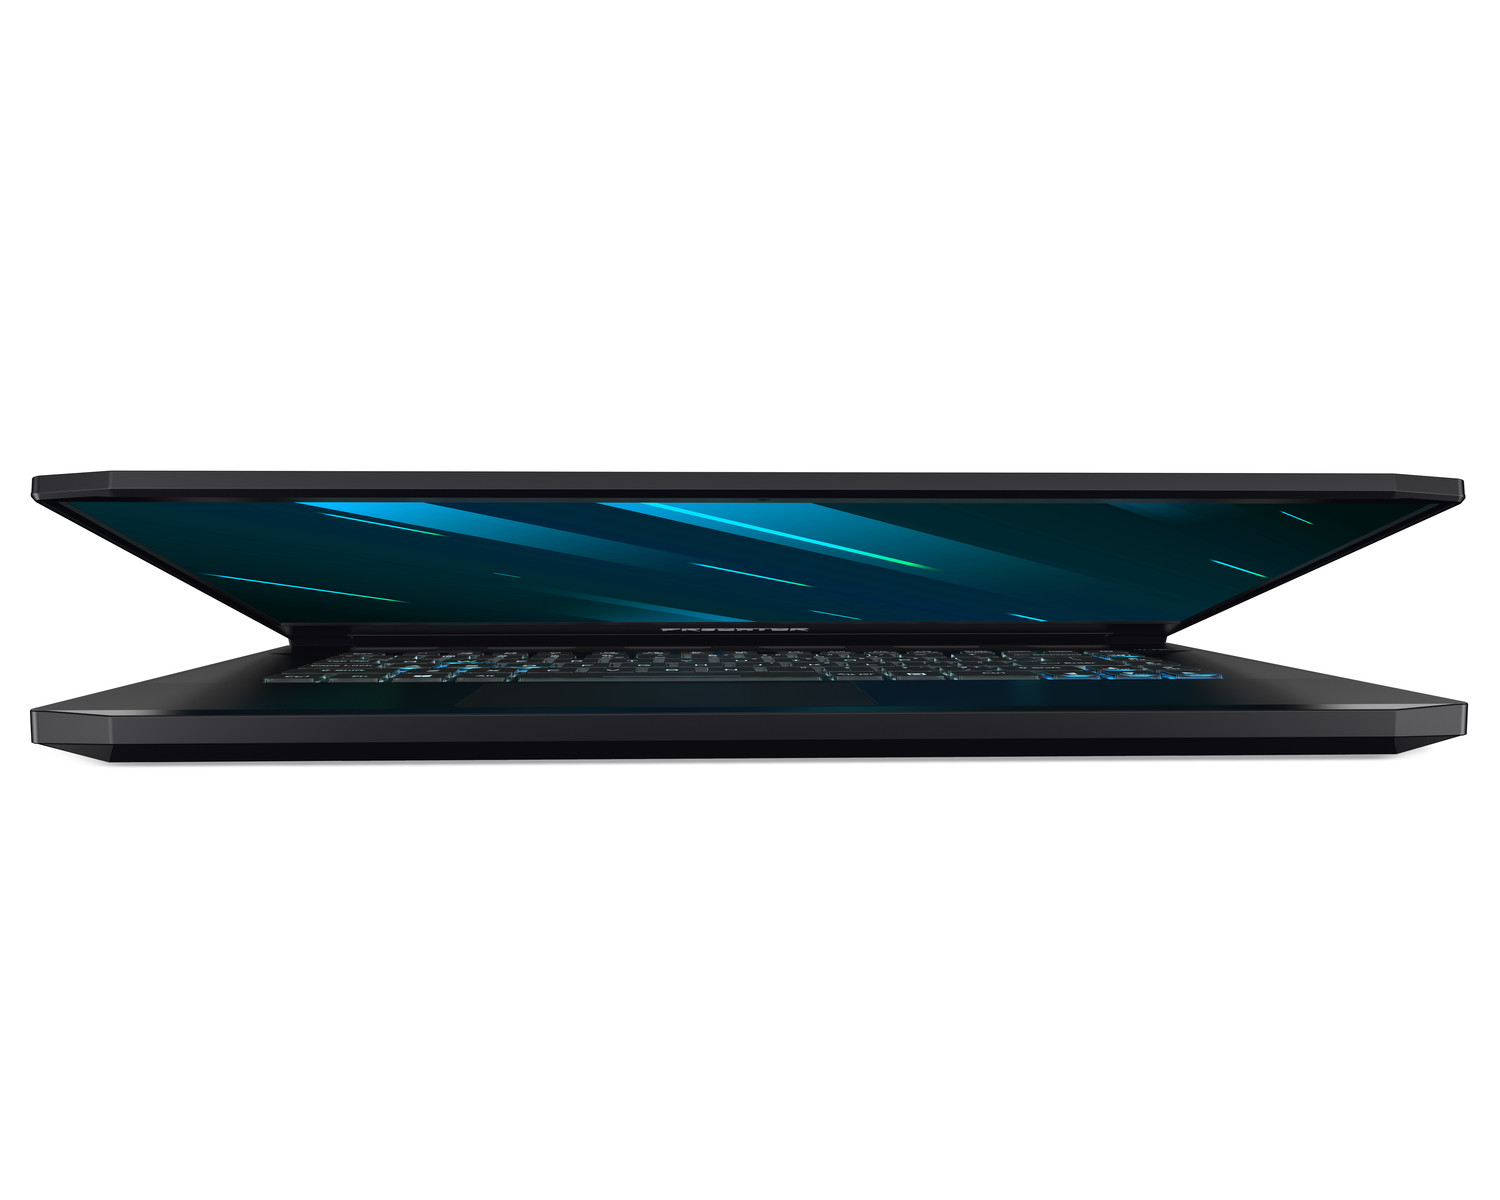 Acer's Predator Tritron 900 Is A Crazy Looking Convertible Gaming Laptop